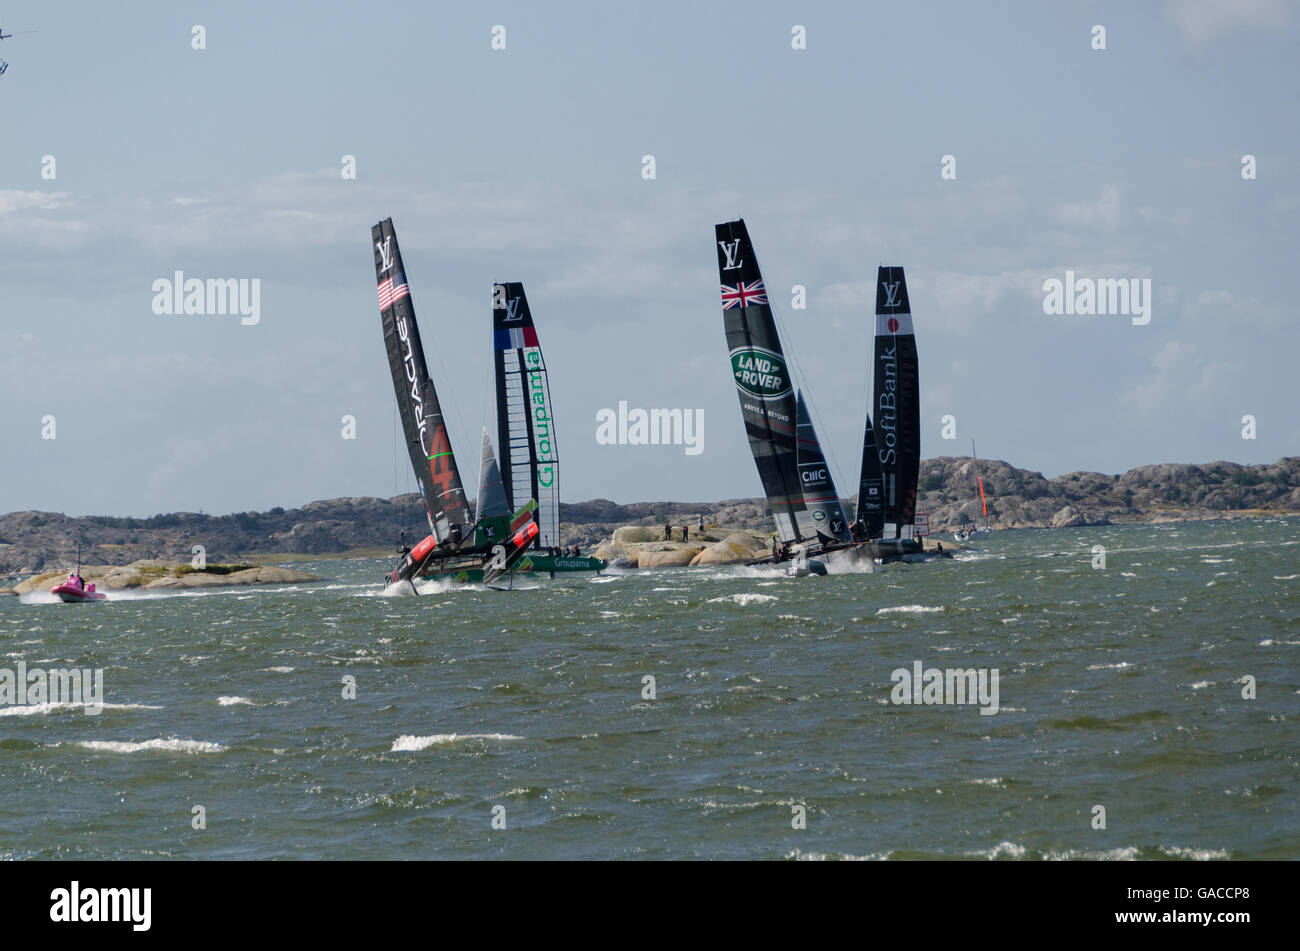 very fast boat sailng in americas cup in the competition in Gothenburg 2015-08-28 - Stock Image